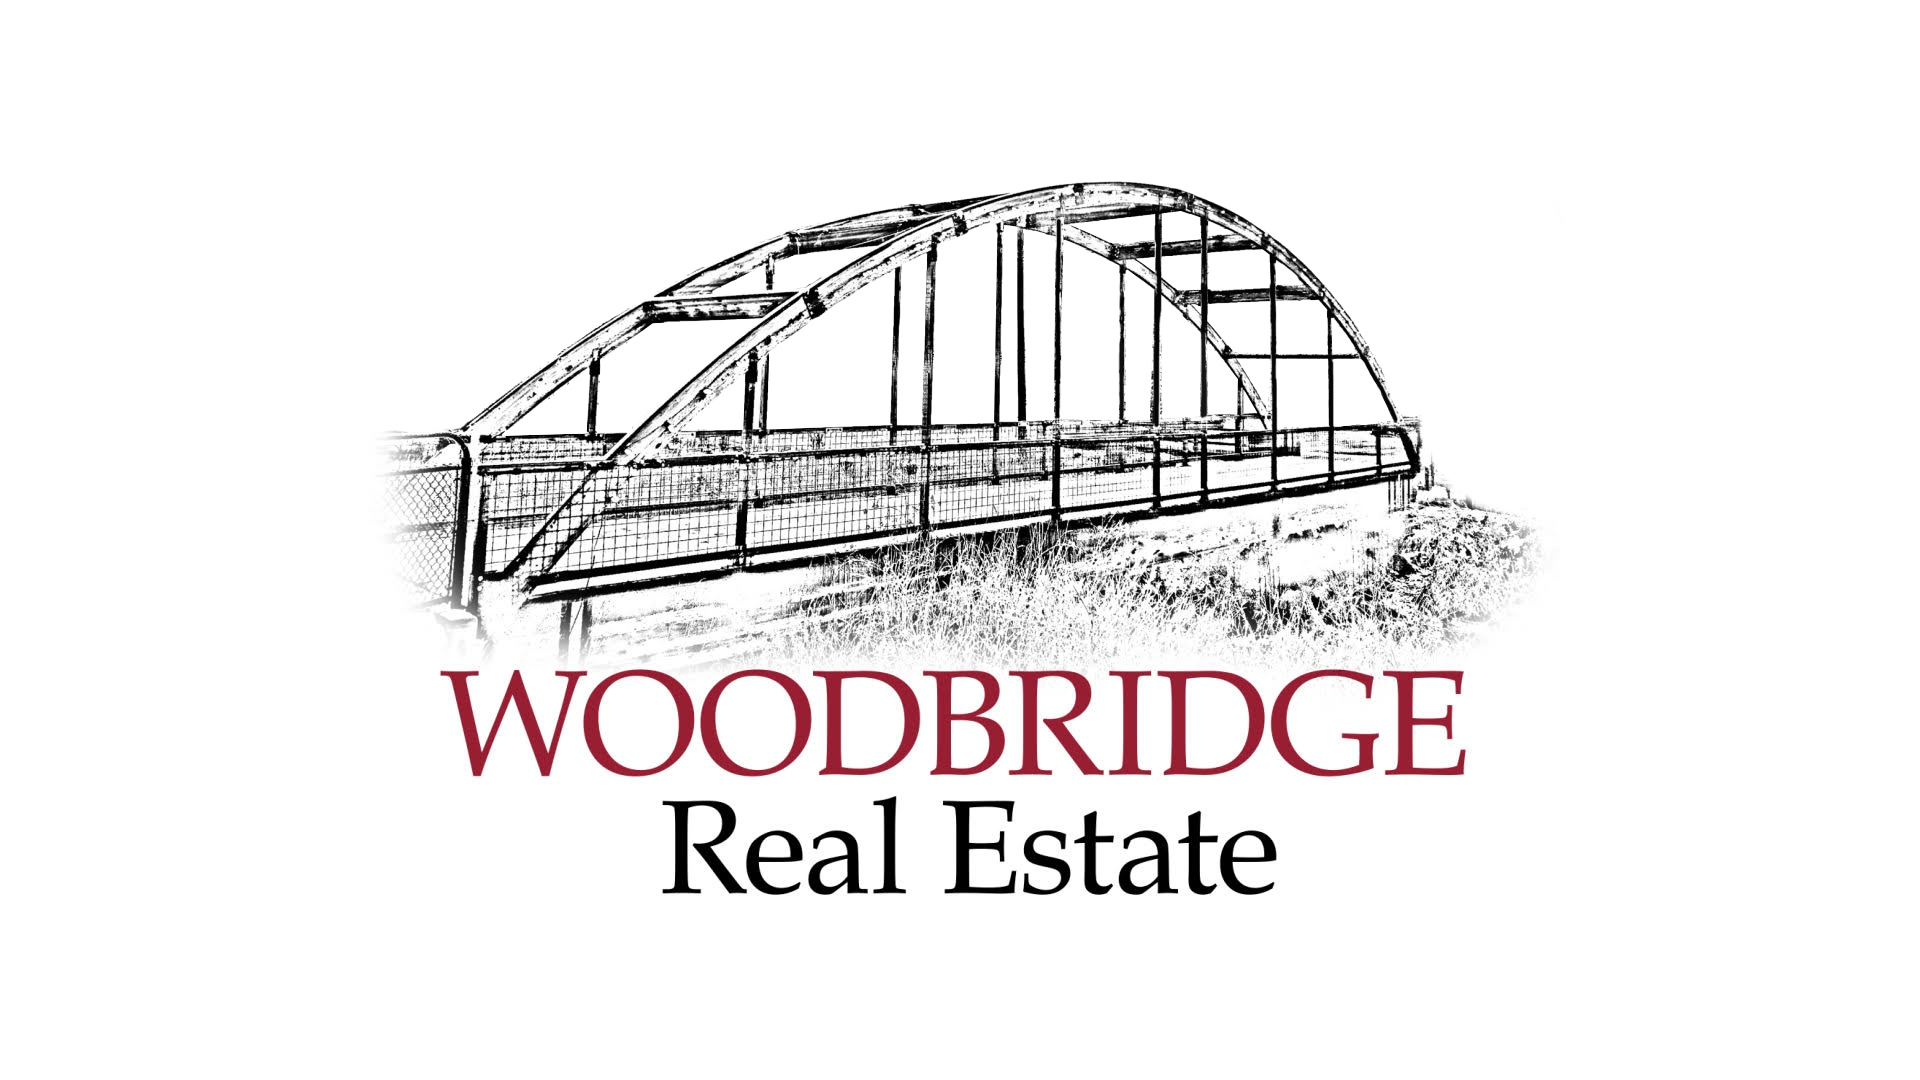 Woodbridge Real Estate